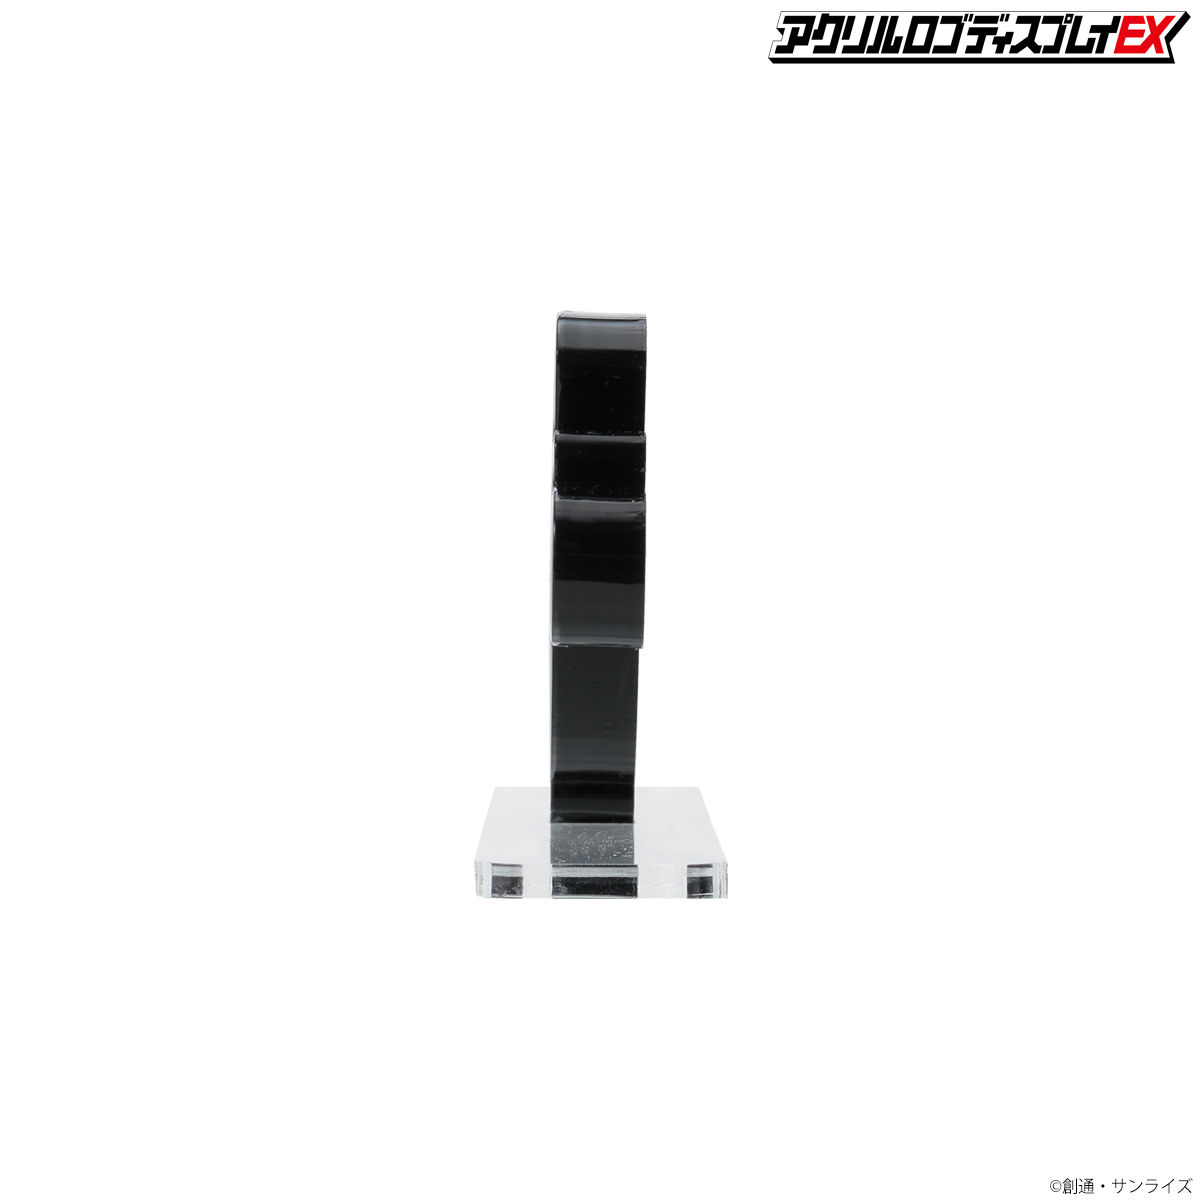 Acrylic Logo Display EX Mobile Suit Gundam SEED [Feb 2022 Delivery]